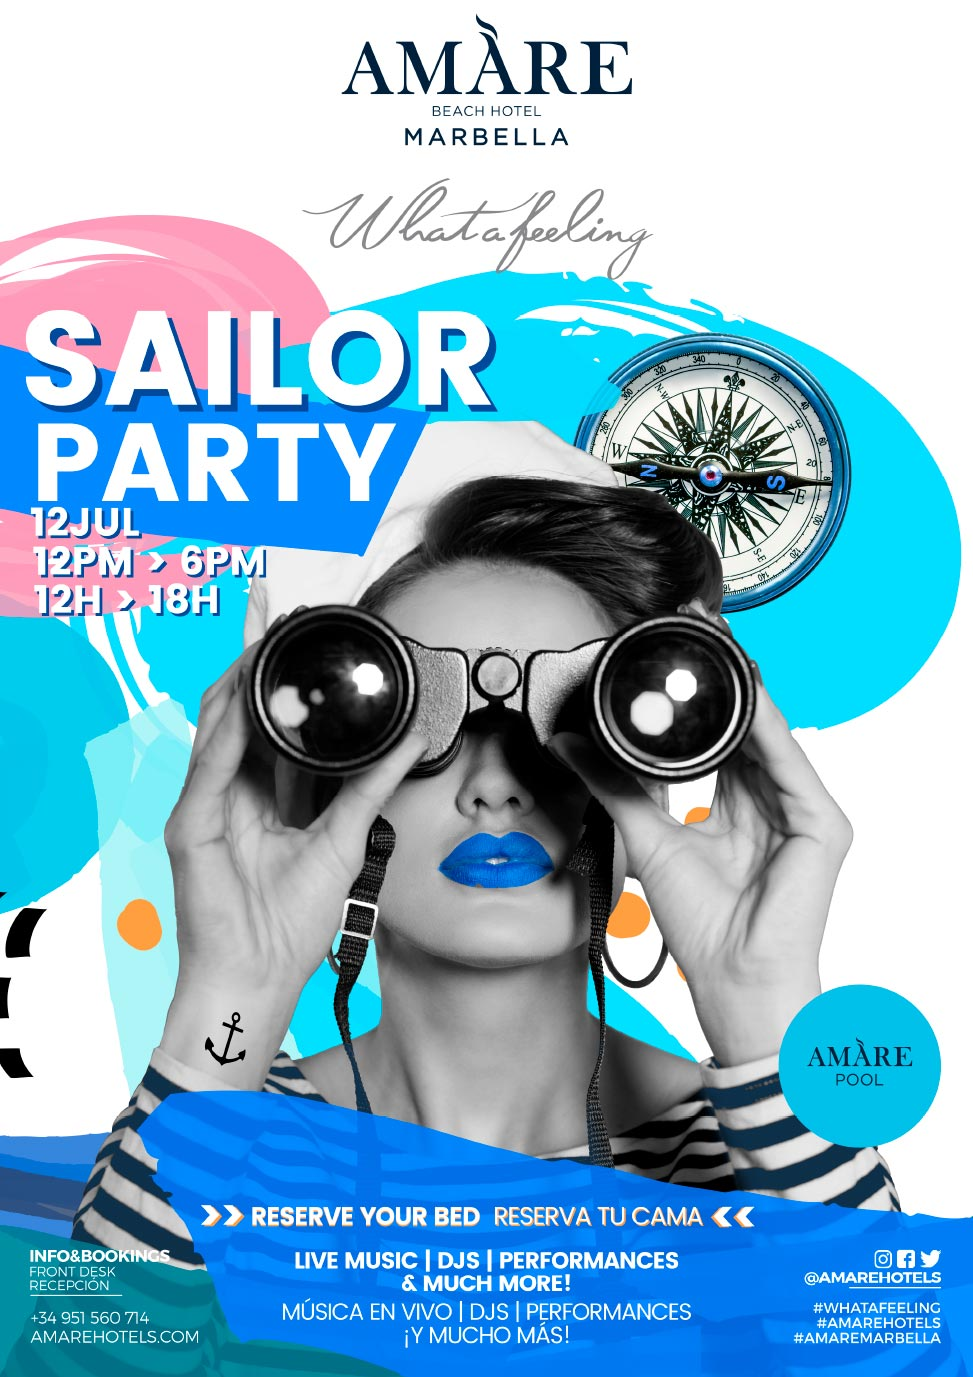 Sail Pool Party | Events Amare Beach Hotel Marbella